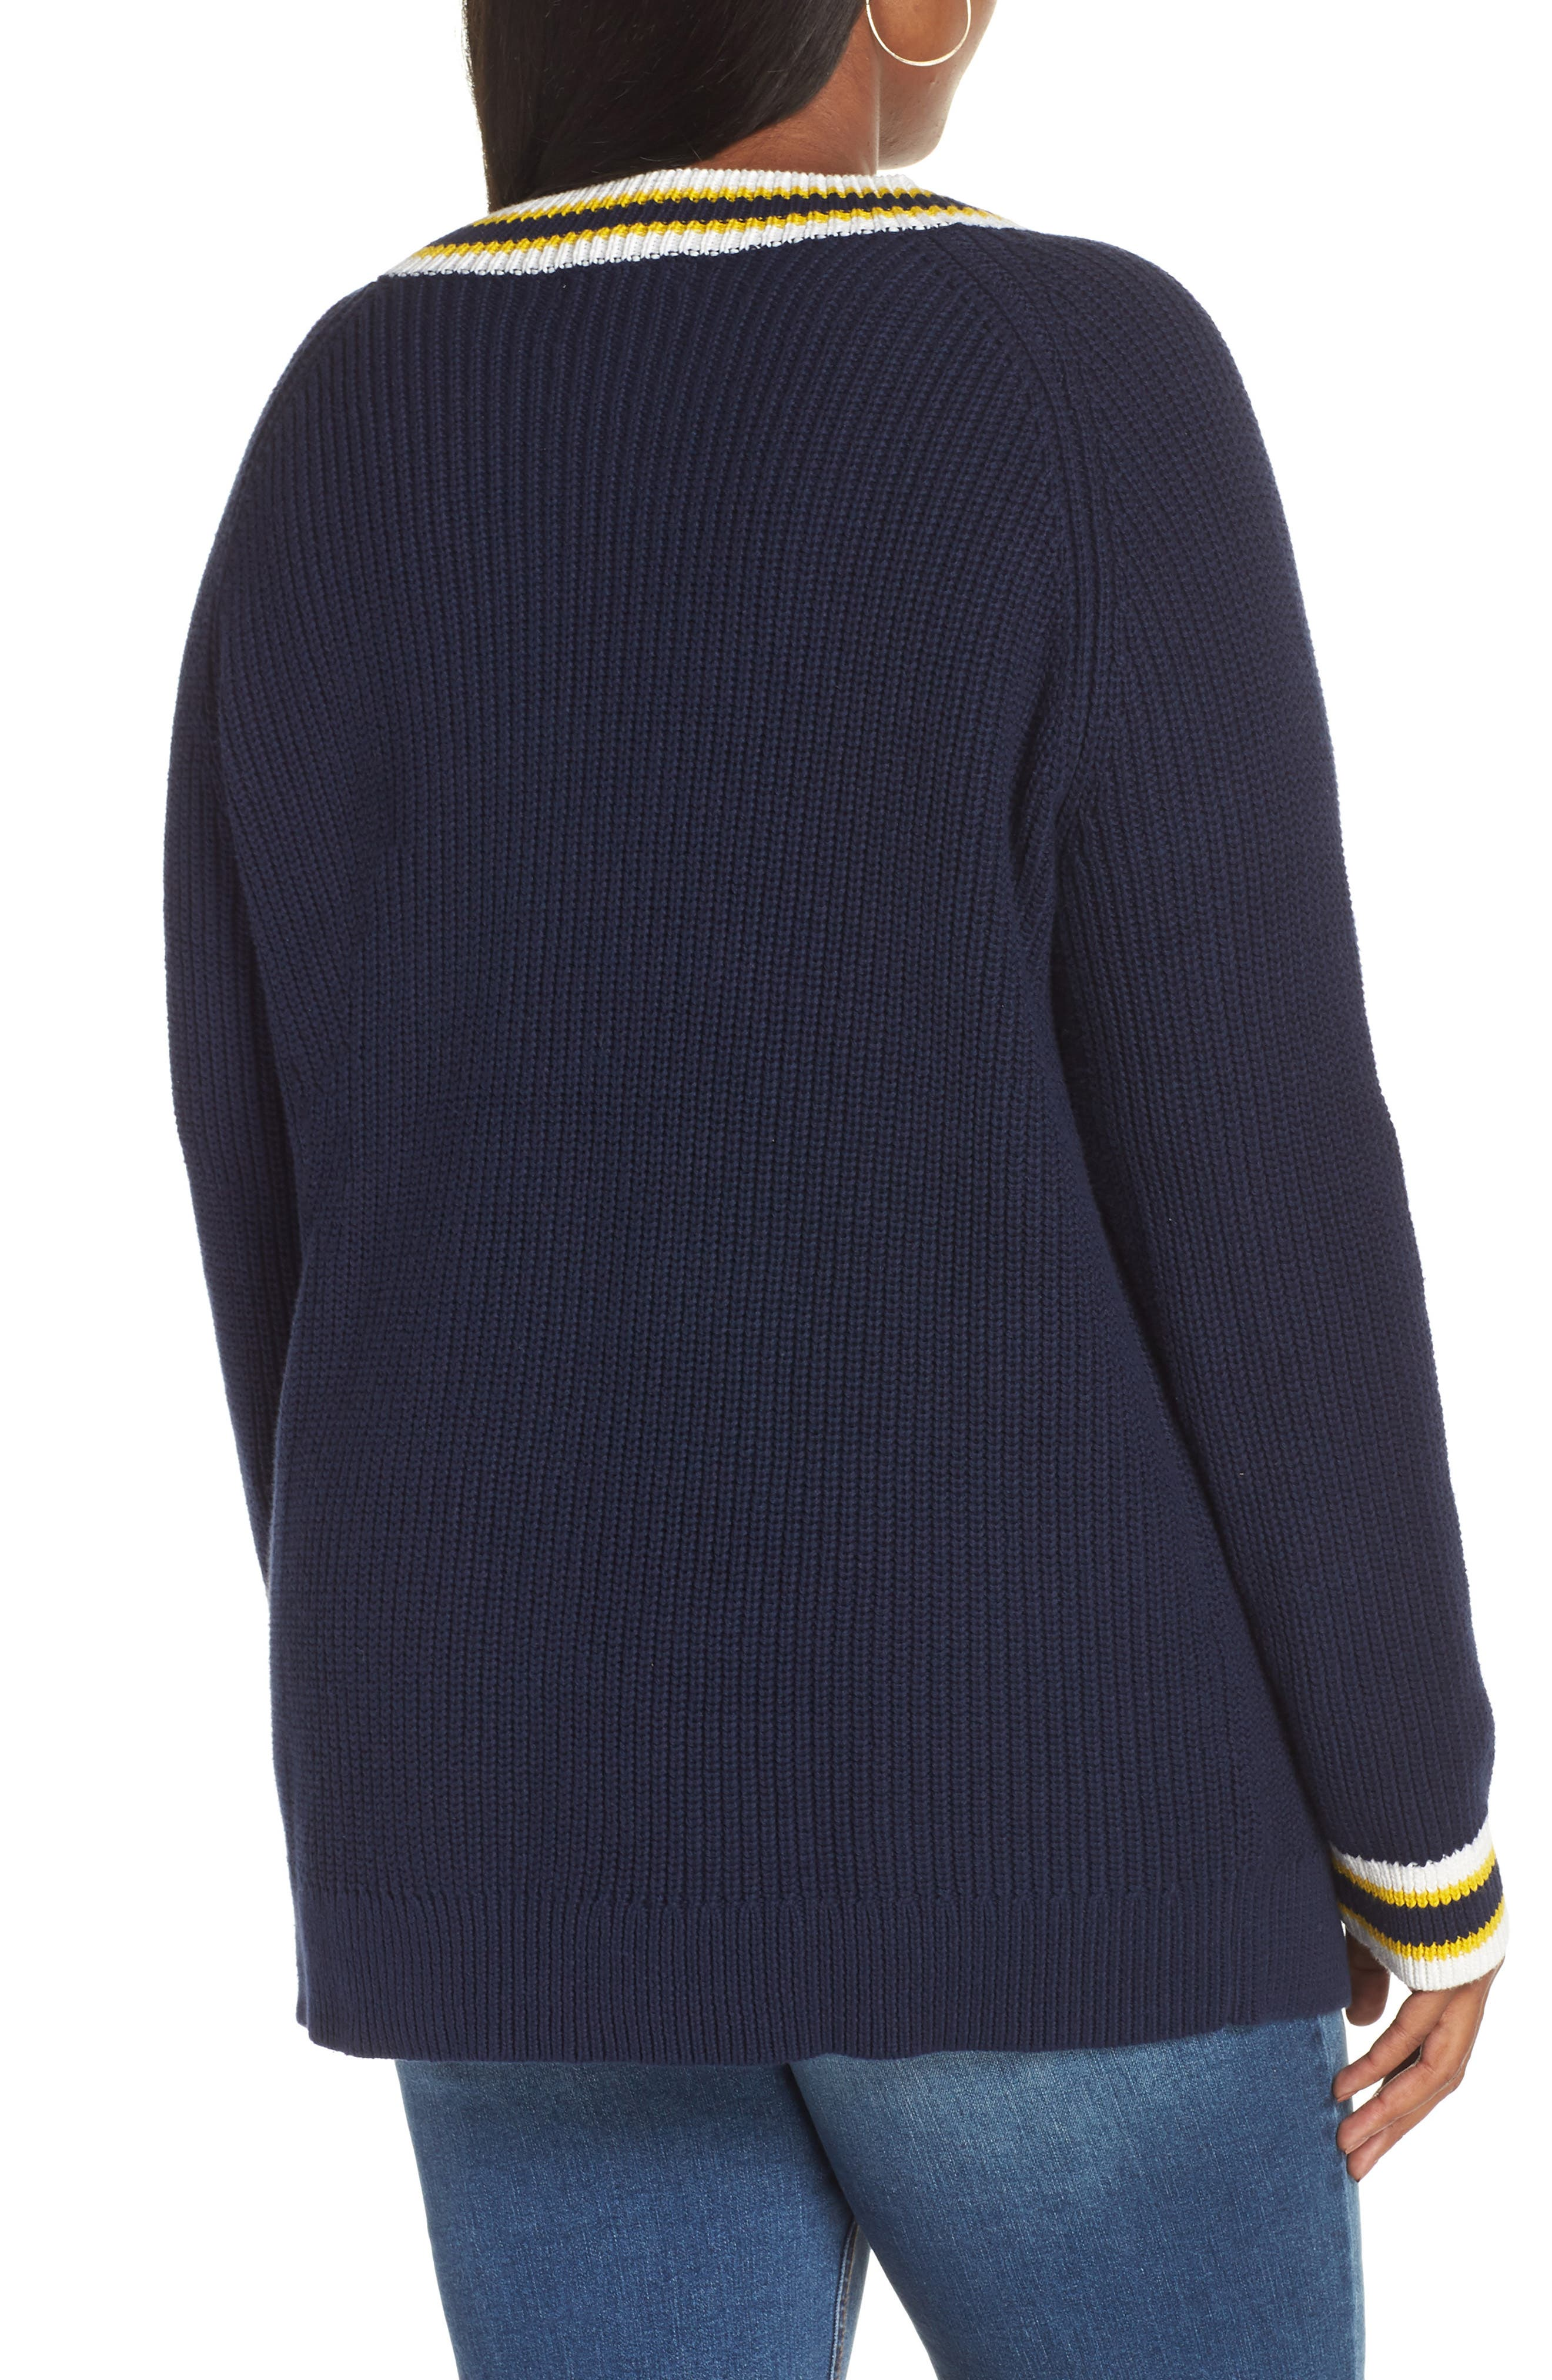 Tennis Sweater,                             Alternate thumbnail 8, color,                             410